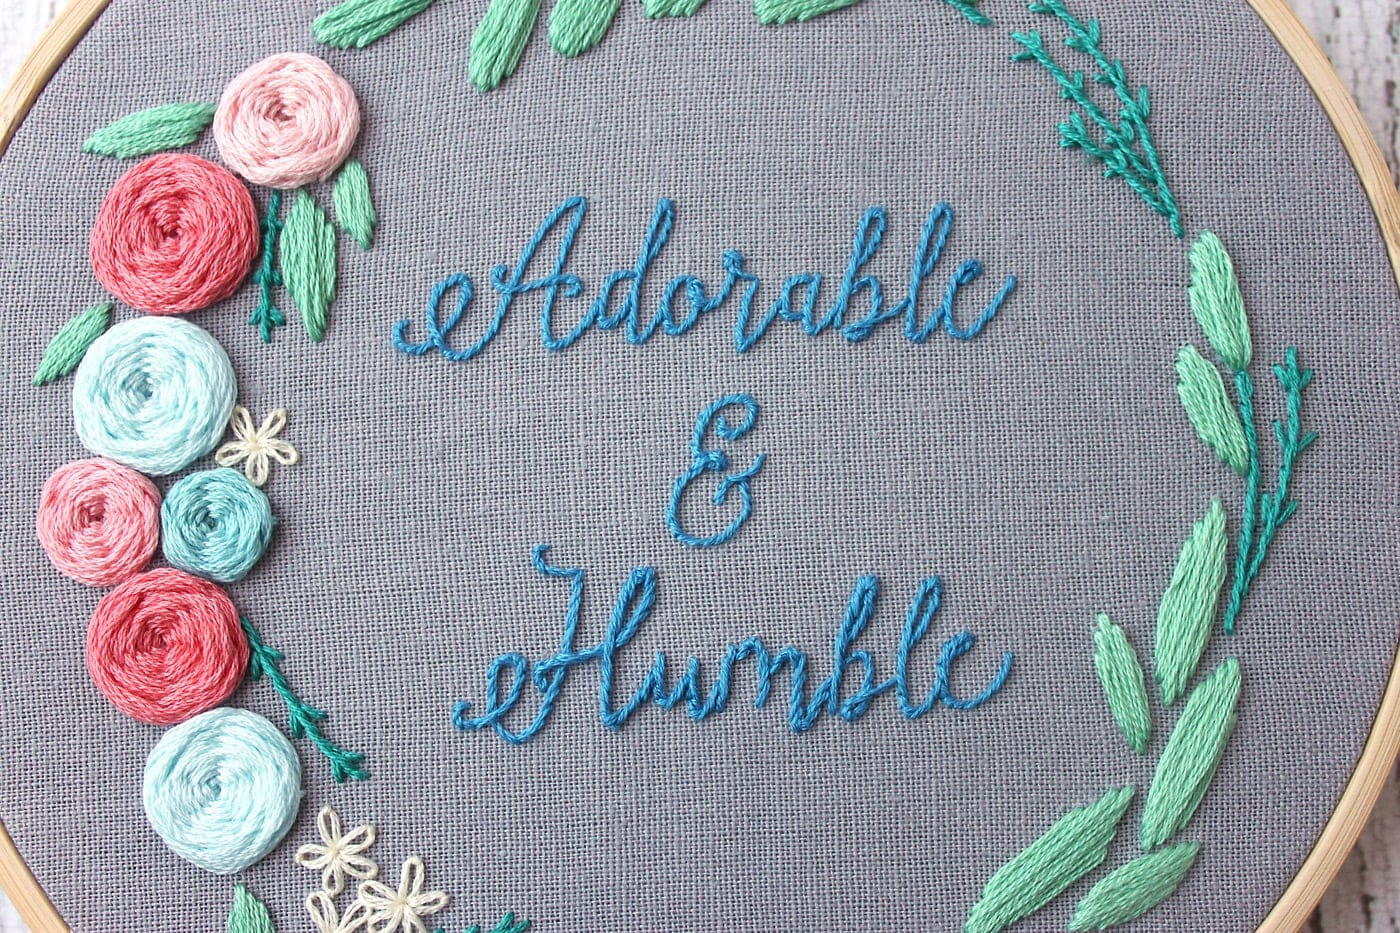 Floral wreath hand embroidery